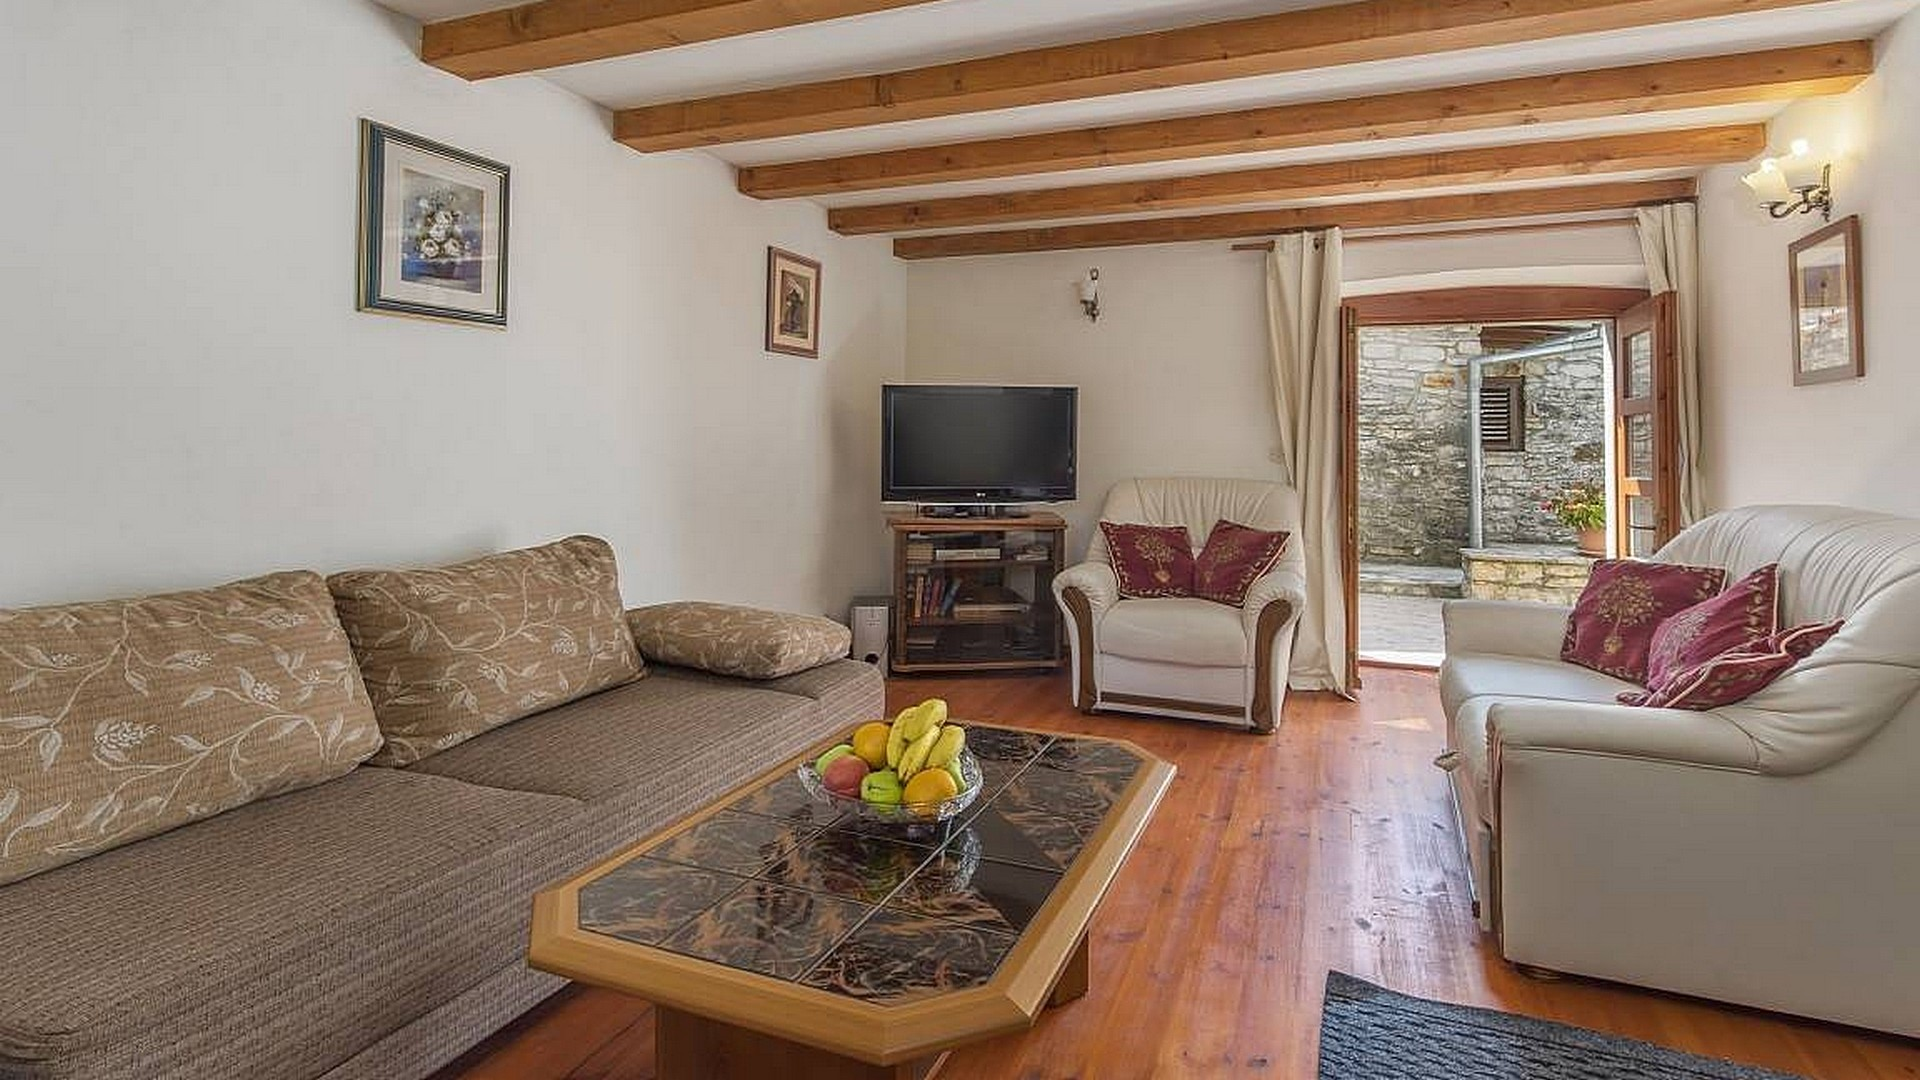 A beautiful renovated house with 2 units near Sv. Lovreč